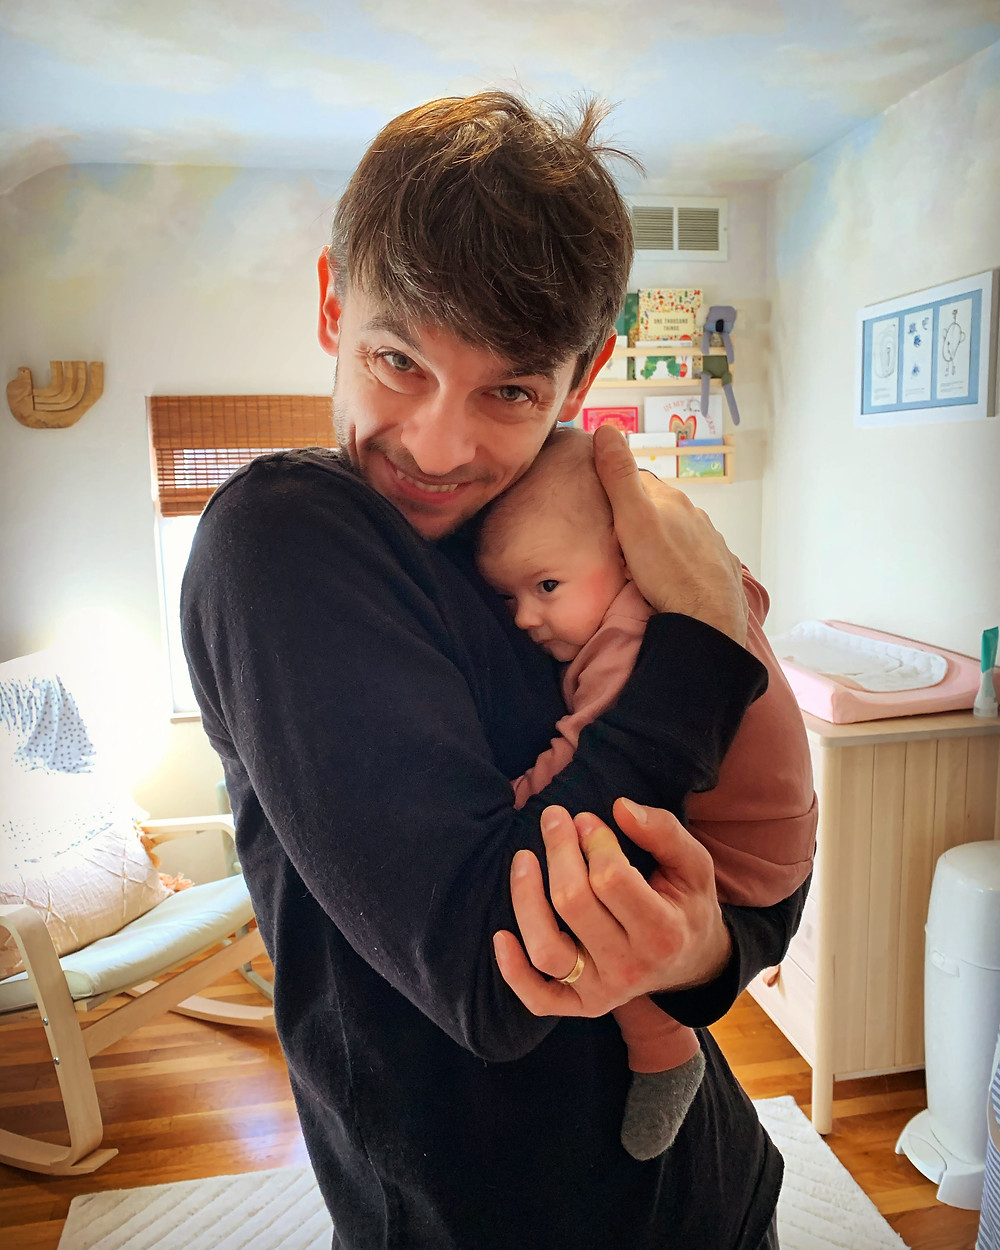 Luca with his daughter